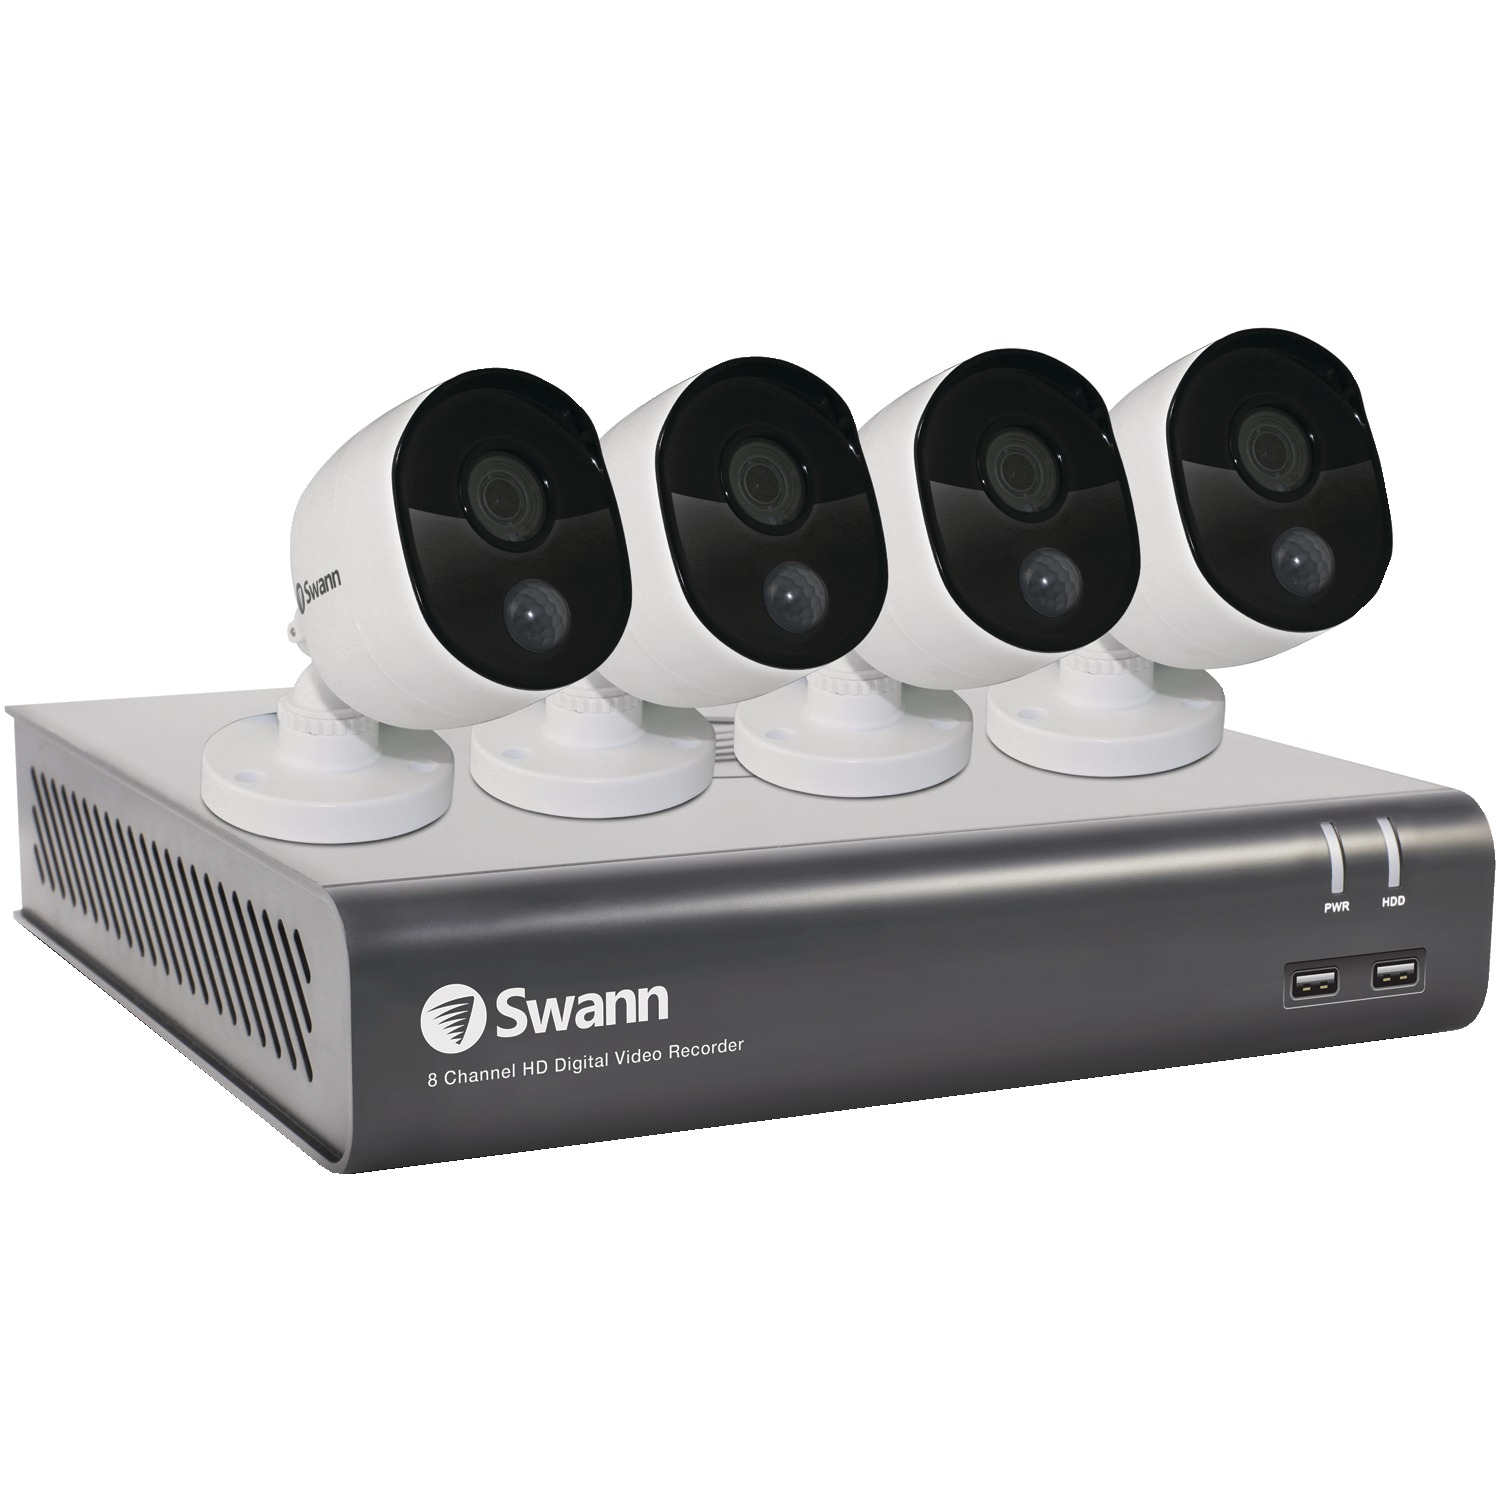 Swann SWDVK-845804-US 8-Channel 4580 Series 1080p DVR With 1TB HD & 4 PIR Bullet Cameras